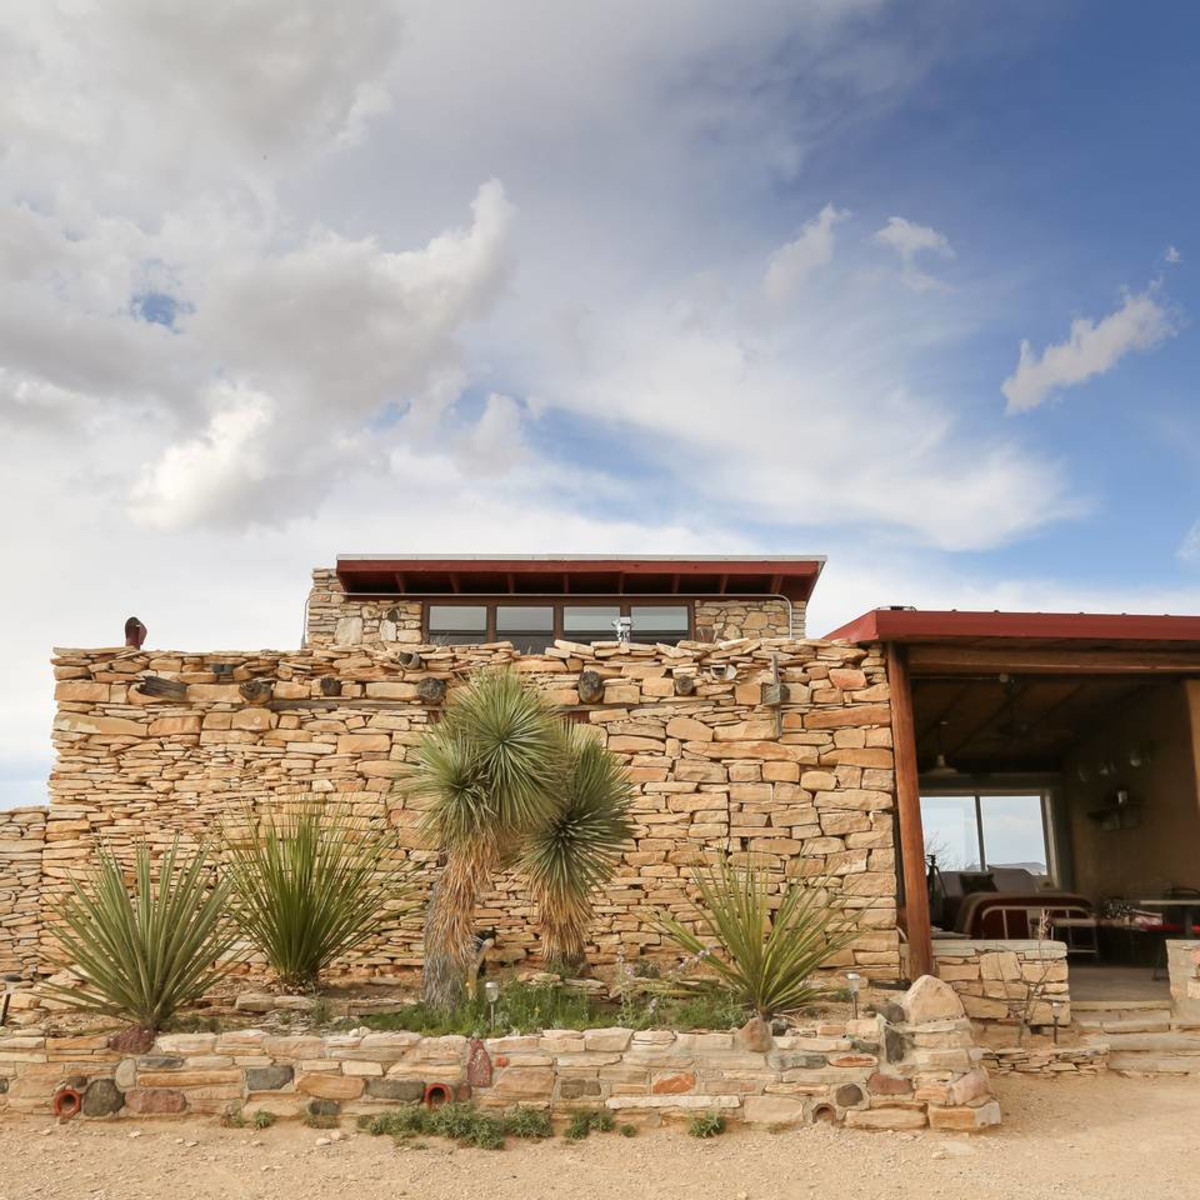 Terlingua West Texas ghost town vacation rental Airbnb